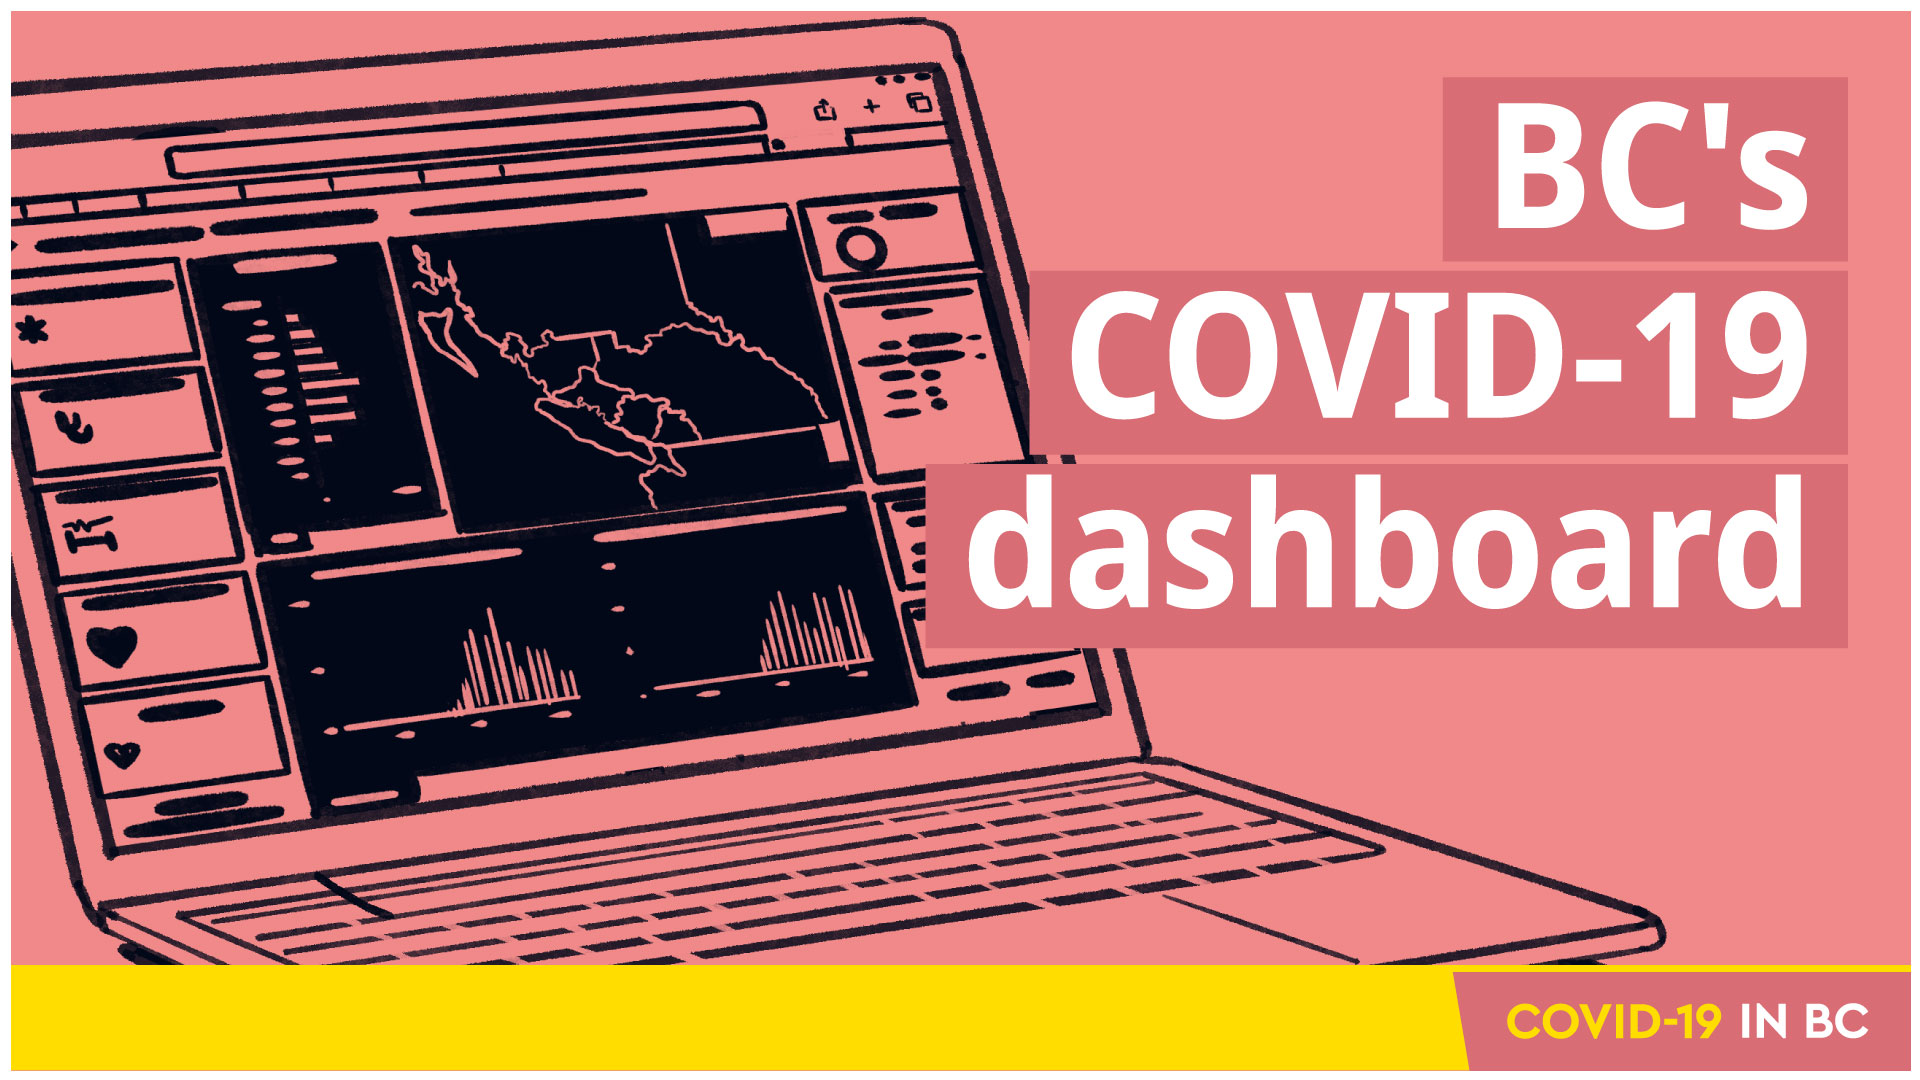 Bc Government News On Twitter Make Sure You Have All The Facts Check Out The Cdcofbc S Interactive Covid 19 Dashboard Tool For All The Latest Numbers Broken Down By Health Region For The